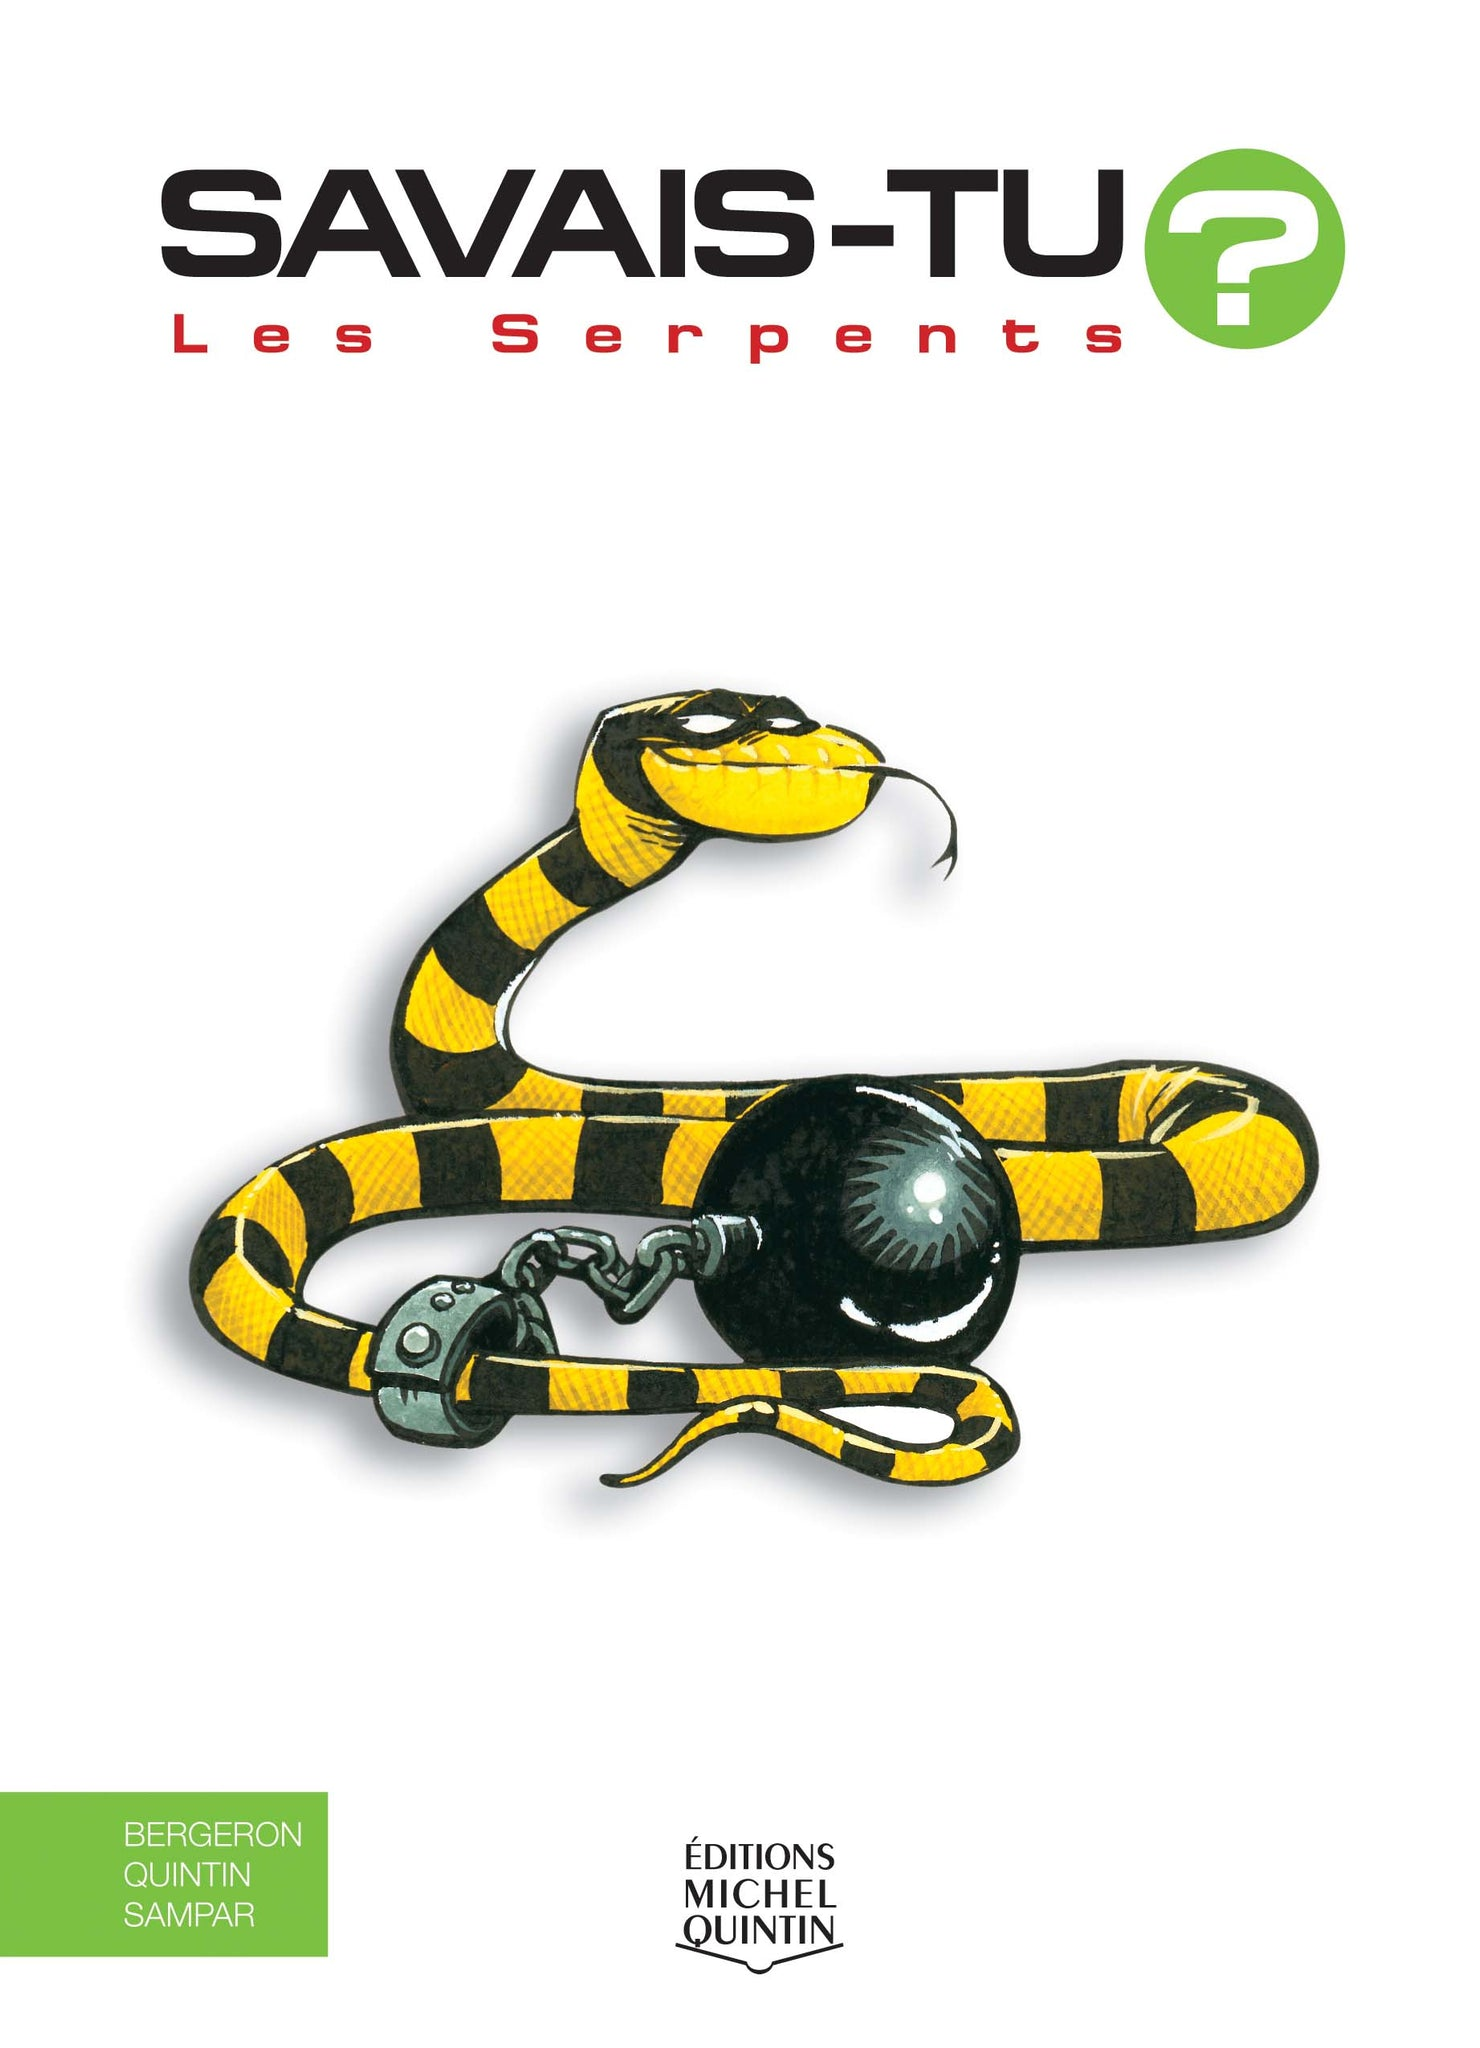 Savais-tu? Les serpents